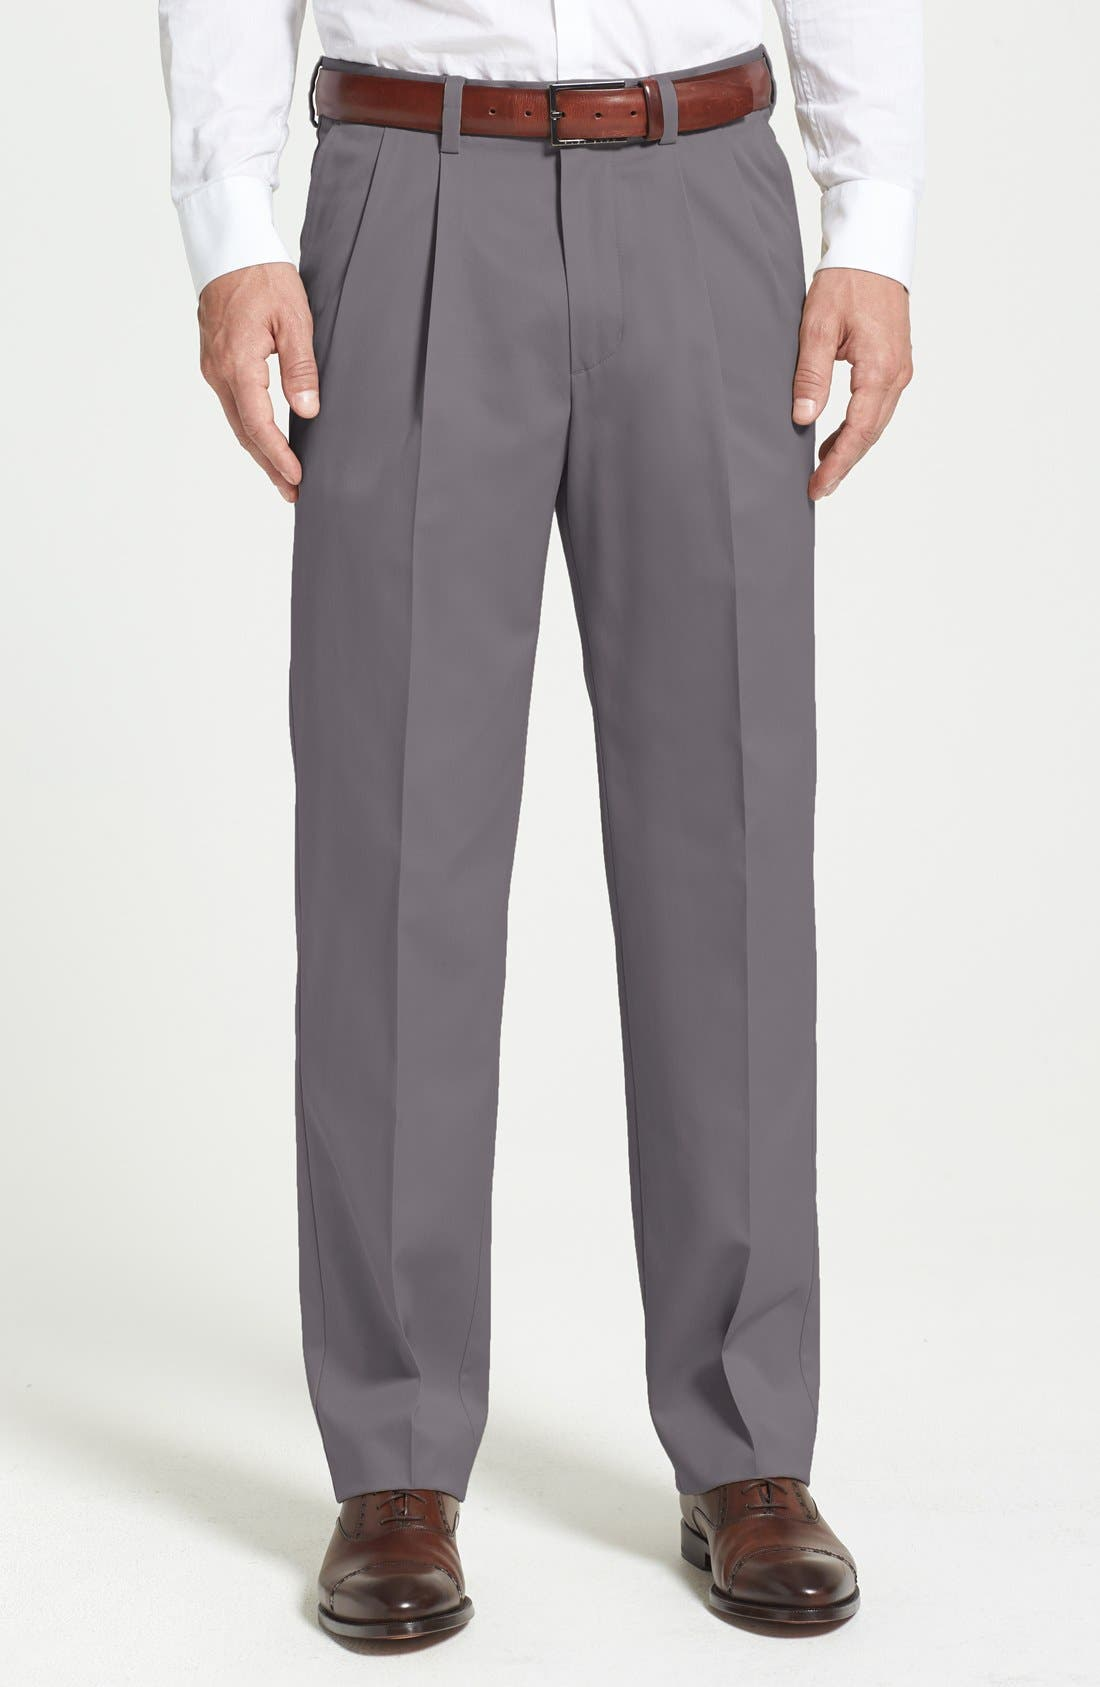 Alternate Image 1 Selected - Nordstrom Men's Shop 'Classic' Smartcare™ Relaxed Fit Double Pleated Cotton Pants (Online Only)